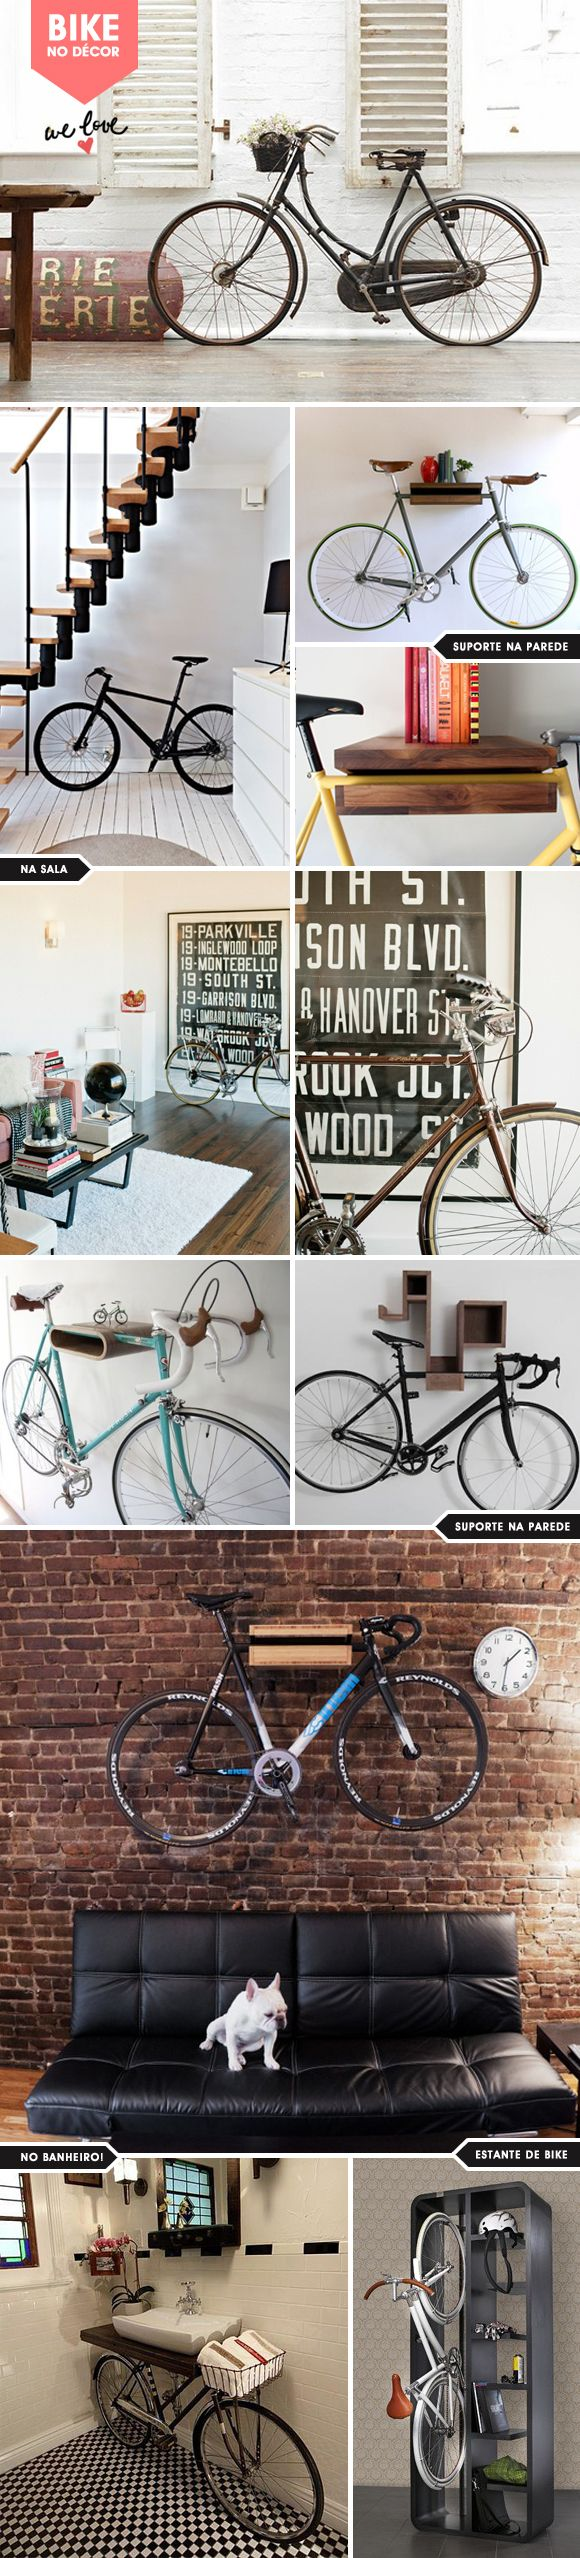 great urban bike stands and also interior home decor. Who doesn't want a bike on their wall?